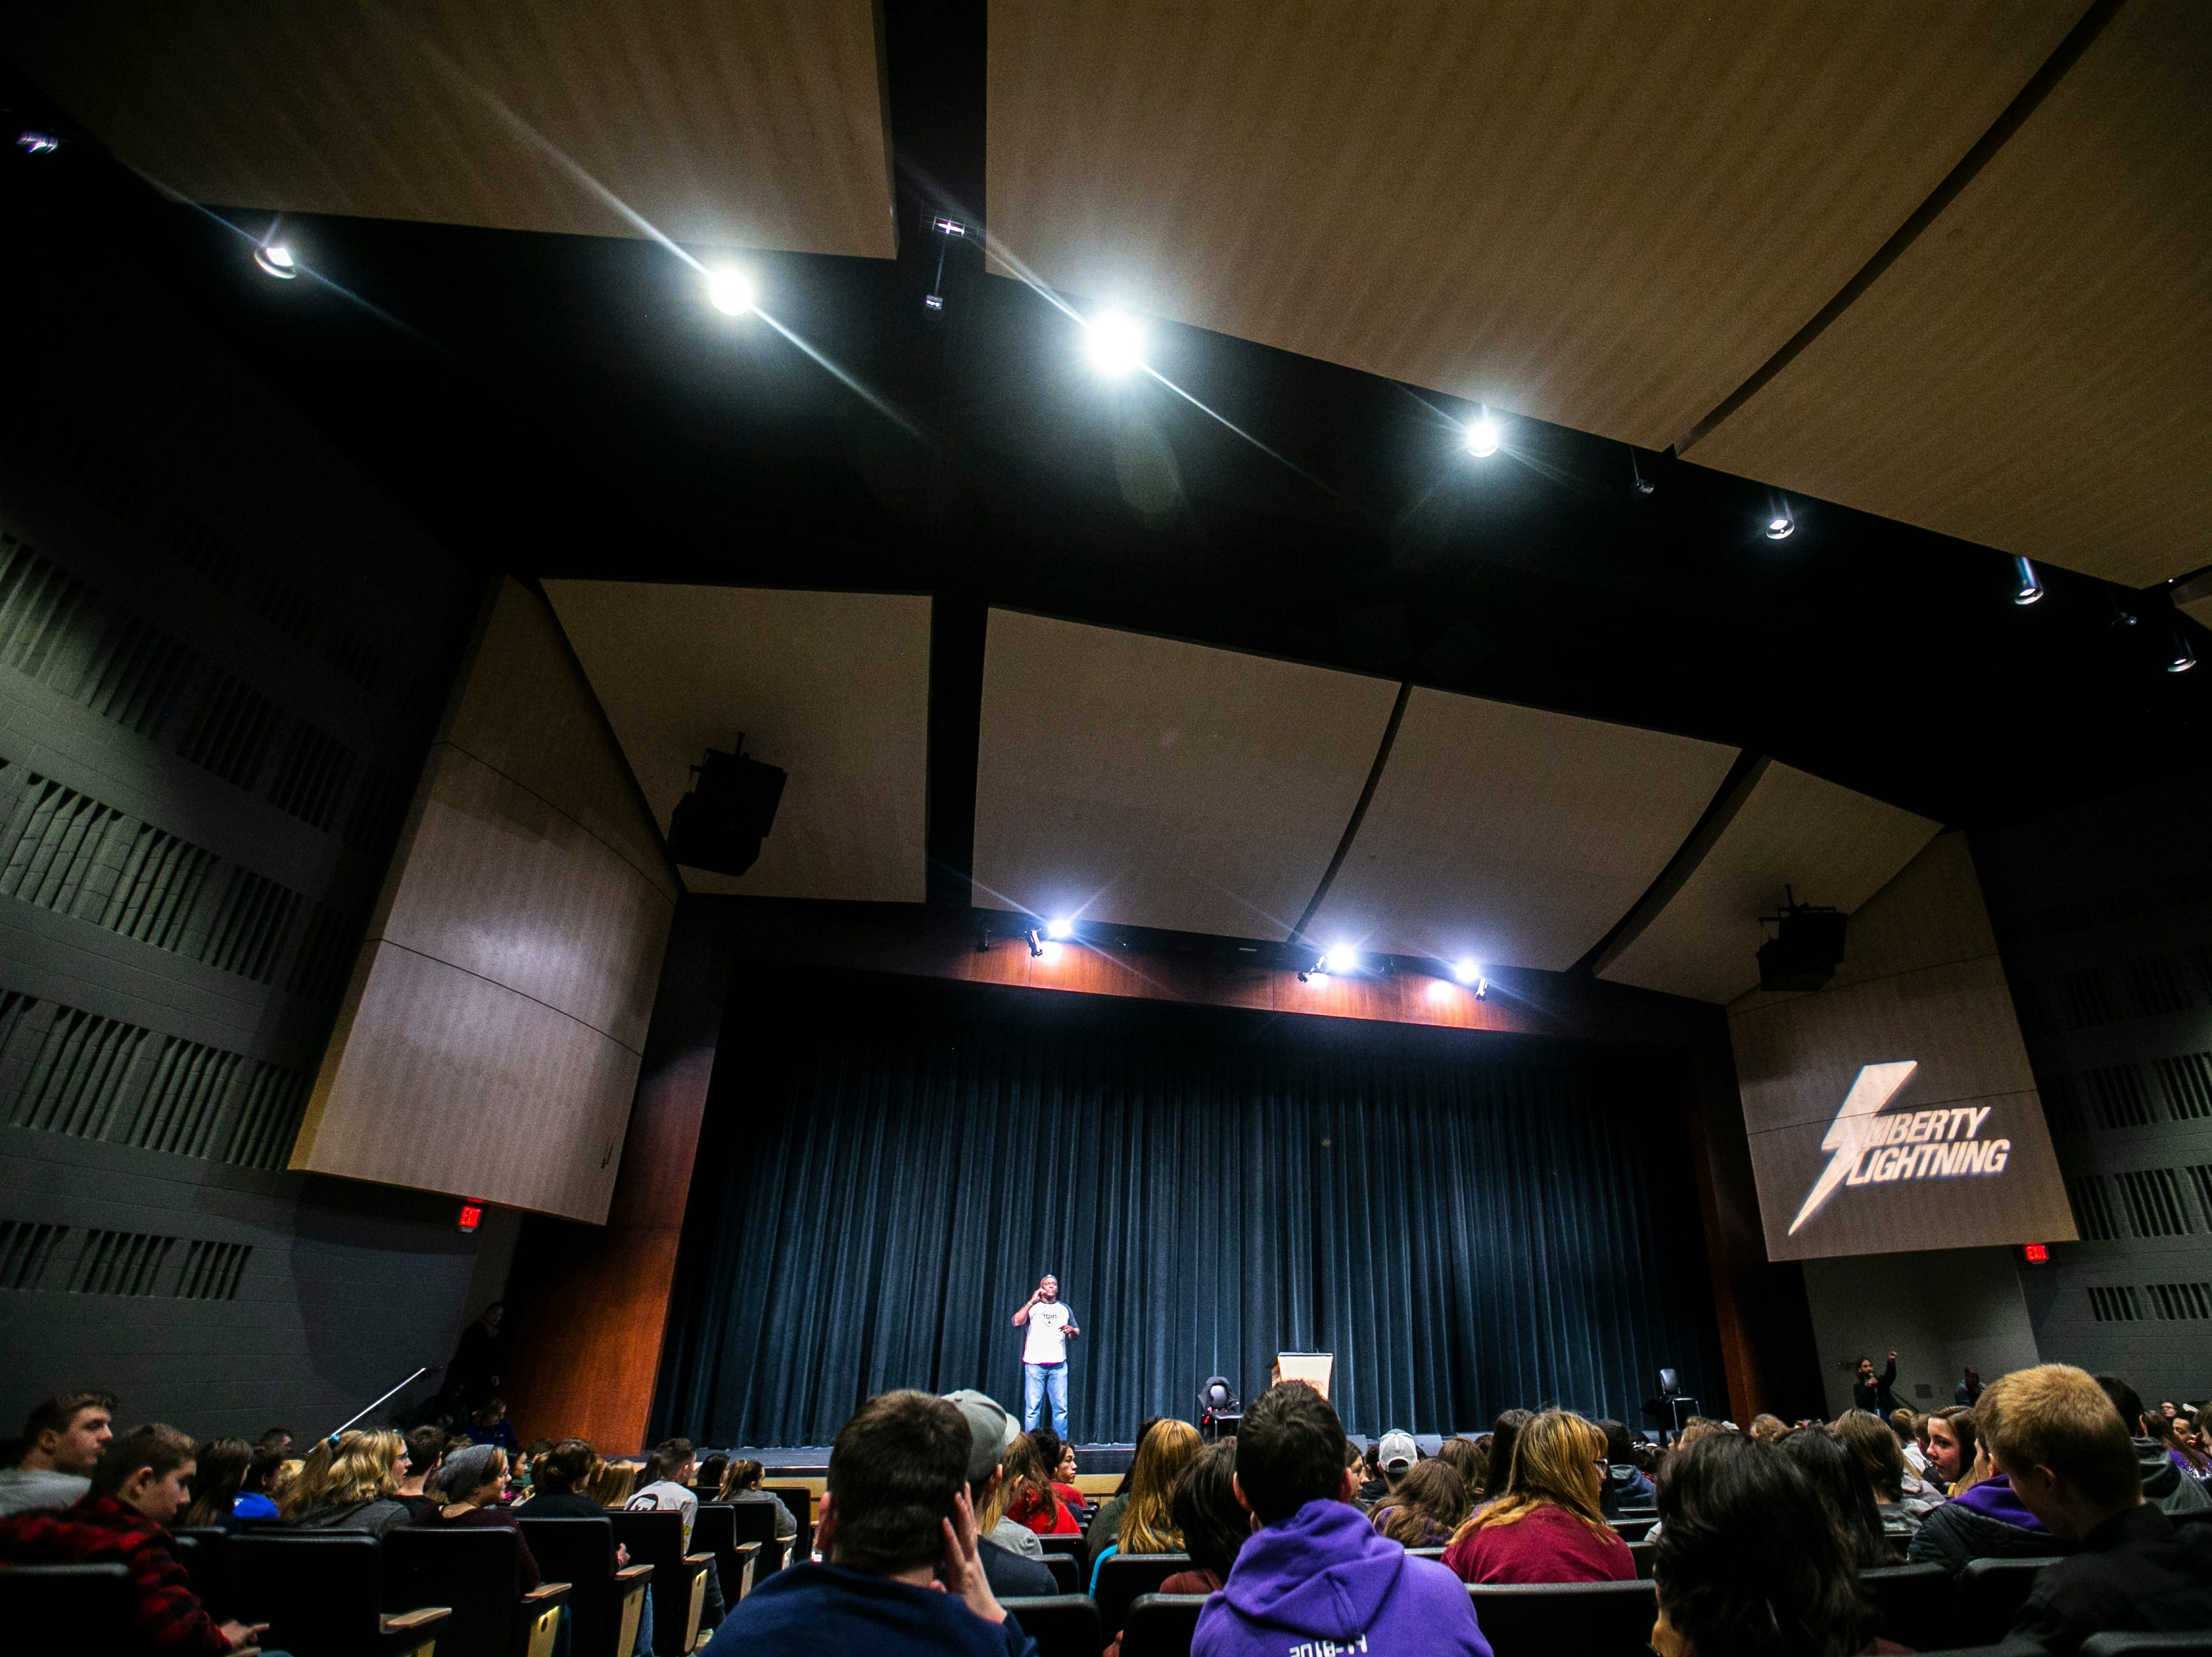 Harvie Herrington, a motivational speaker and former NFL defensive back, speaks during an MLK day event on Friday, Jan. 18, 2019, at Liberty High School in North Liberty, Iowa.